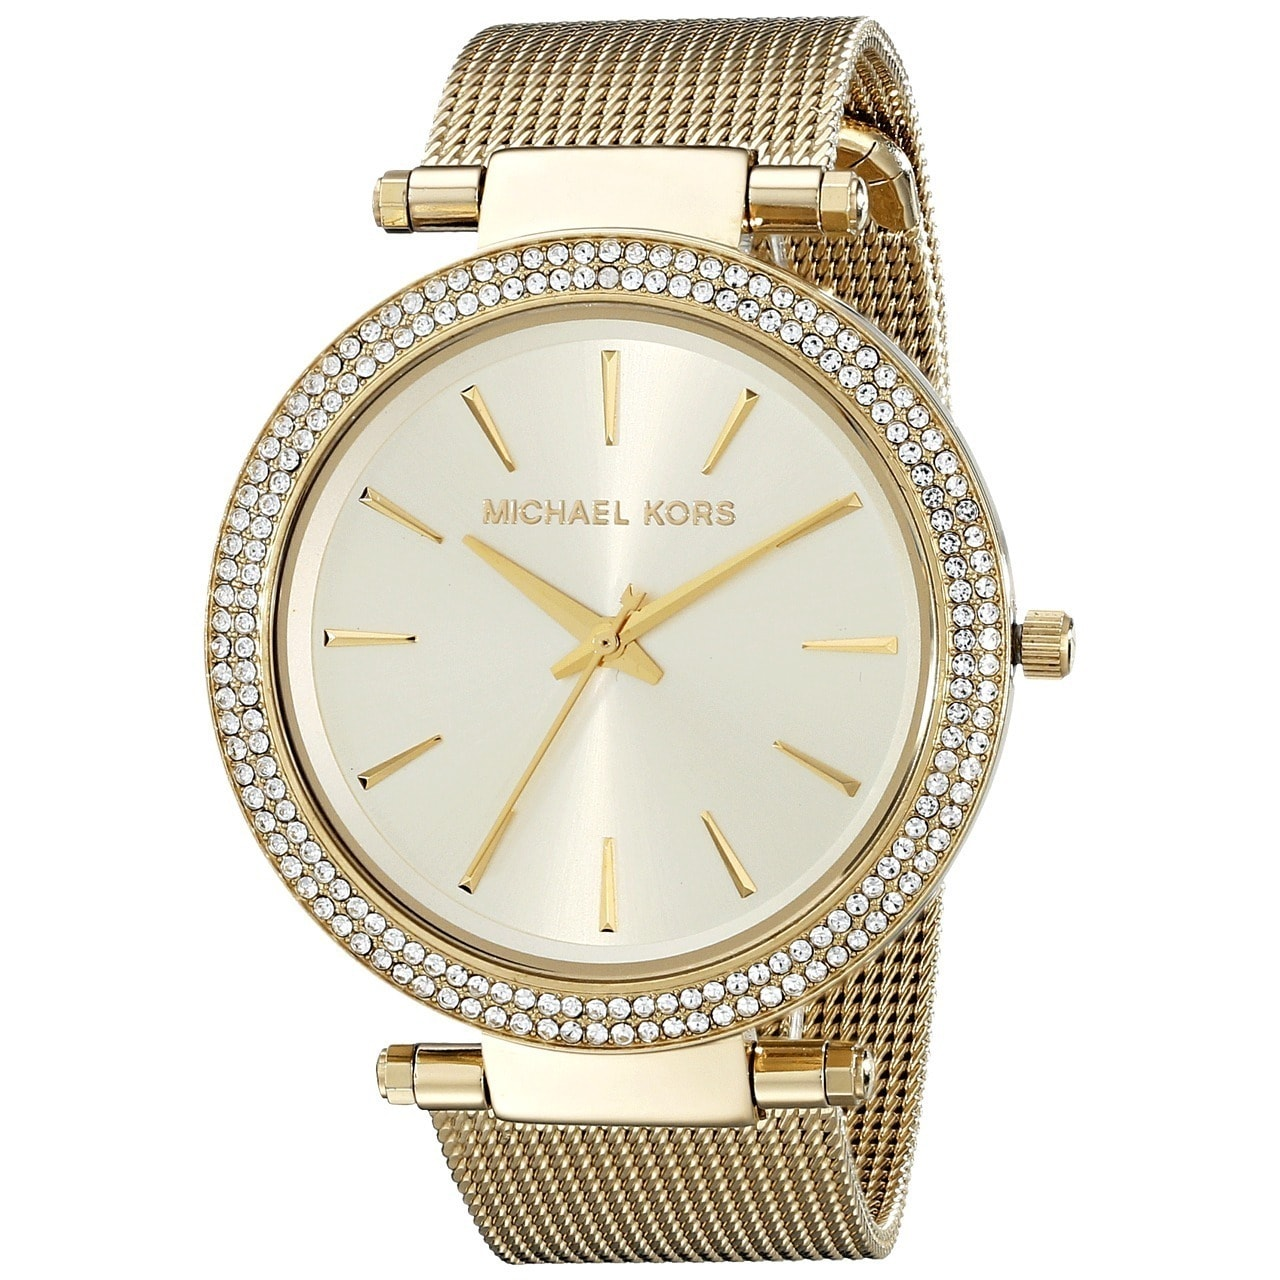 5dc2f839c8ca Shop Michael Kors Women s MK3368  Darci  Goldtone Stainless Steel Watch -  Free Shipping Today - Overstock - 9756021